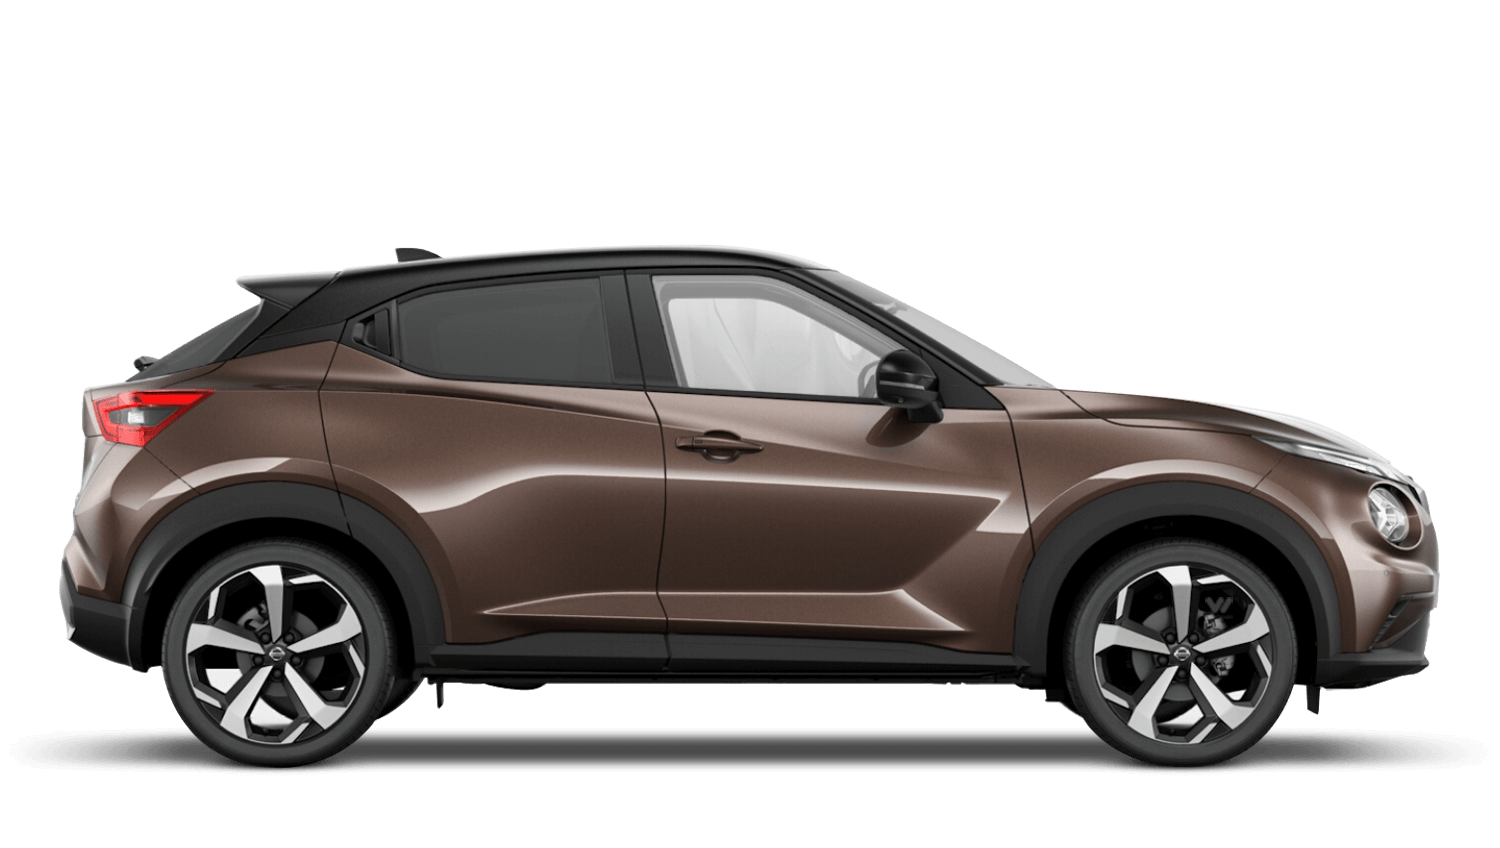 Chestnut Bronze with Pearl Black Roof Next Generation Nissan Juke